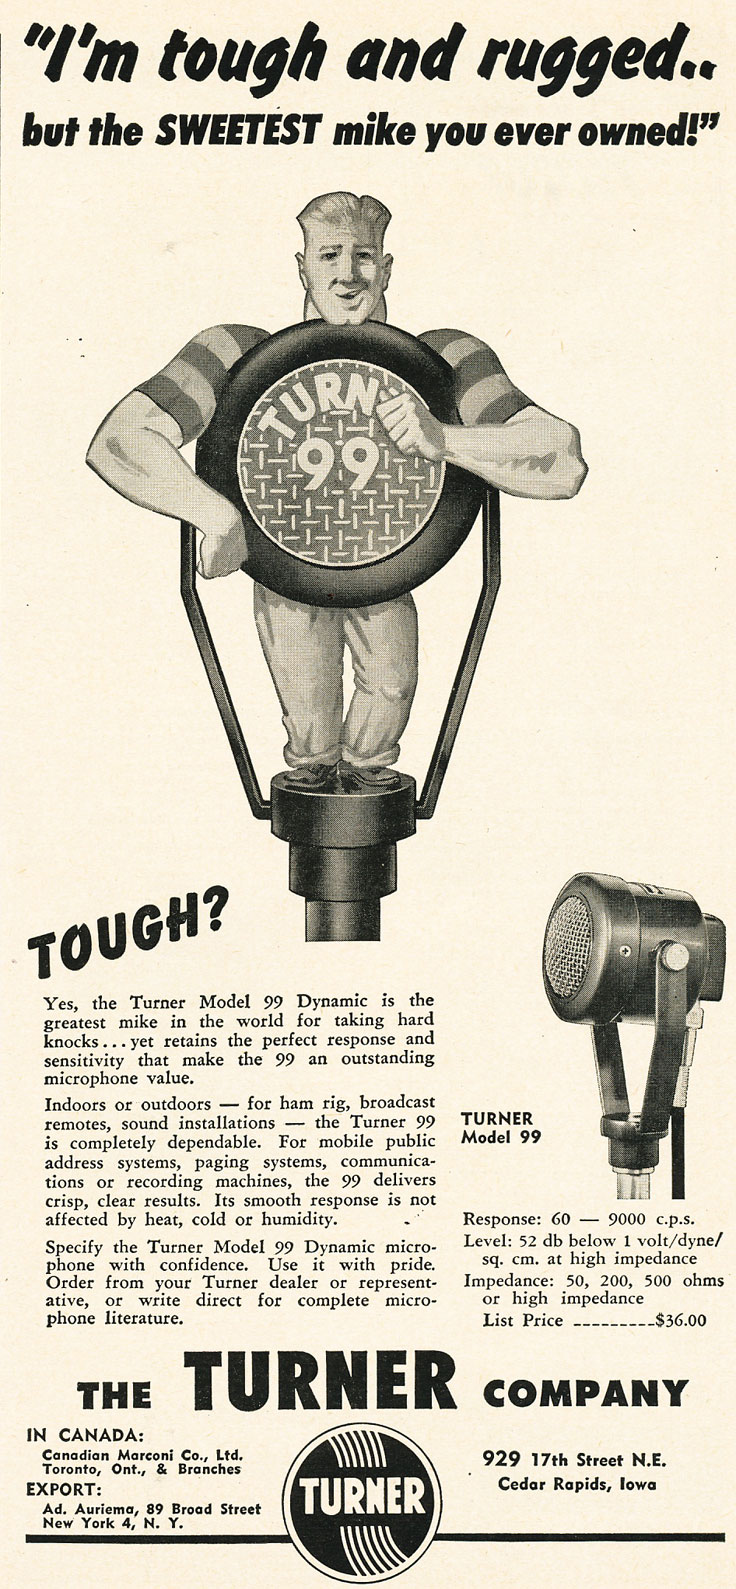 1952 ad for the Turner 99 microphone in Reel2ReelTexas.com's vintage recording collection